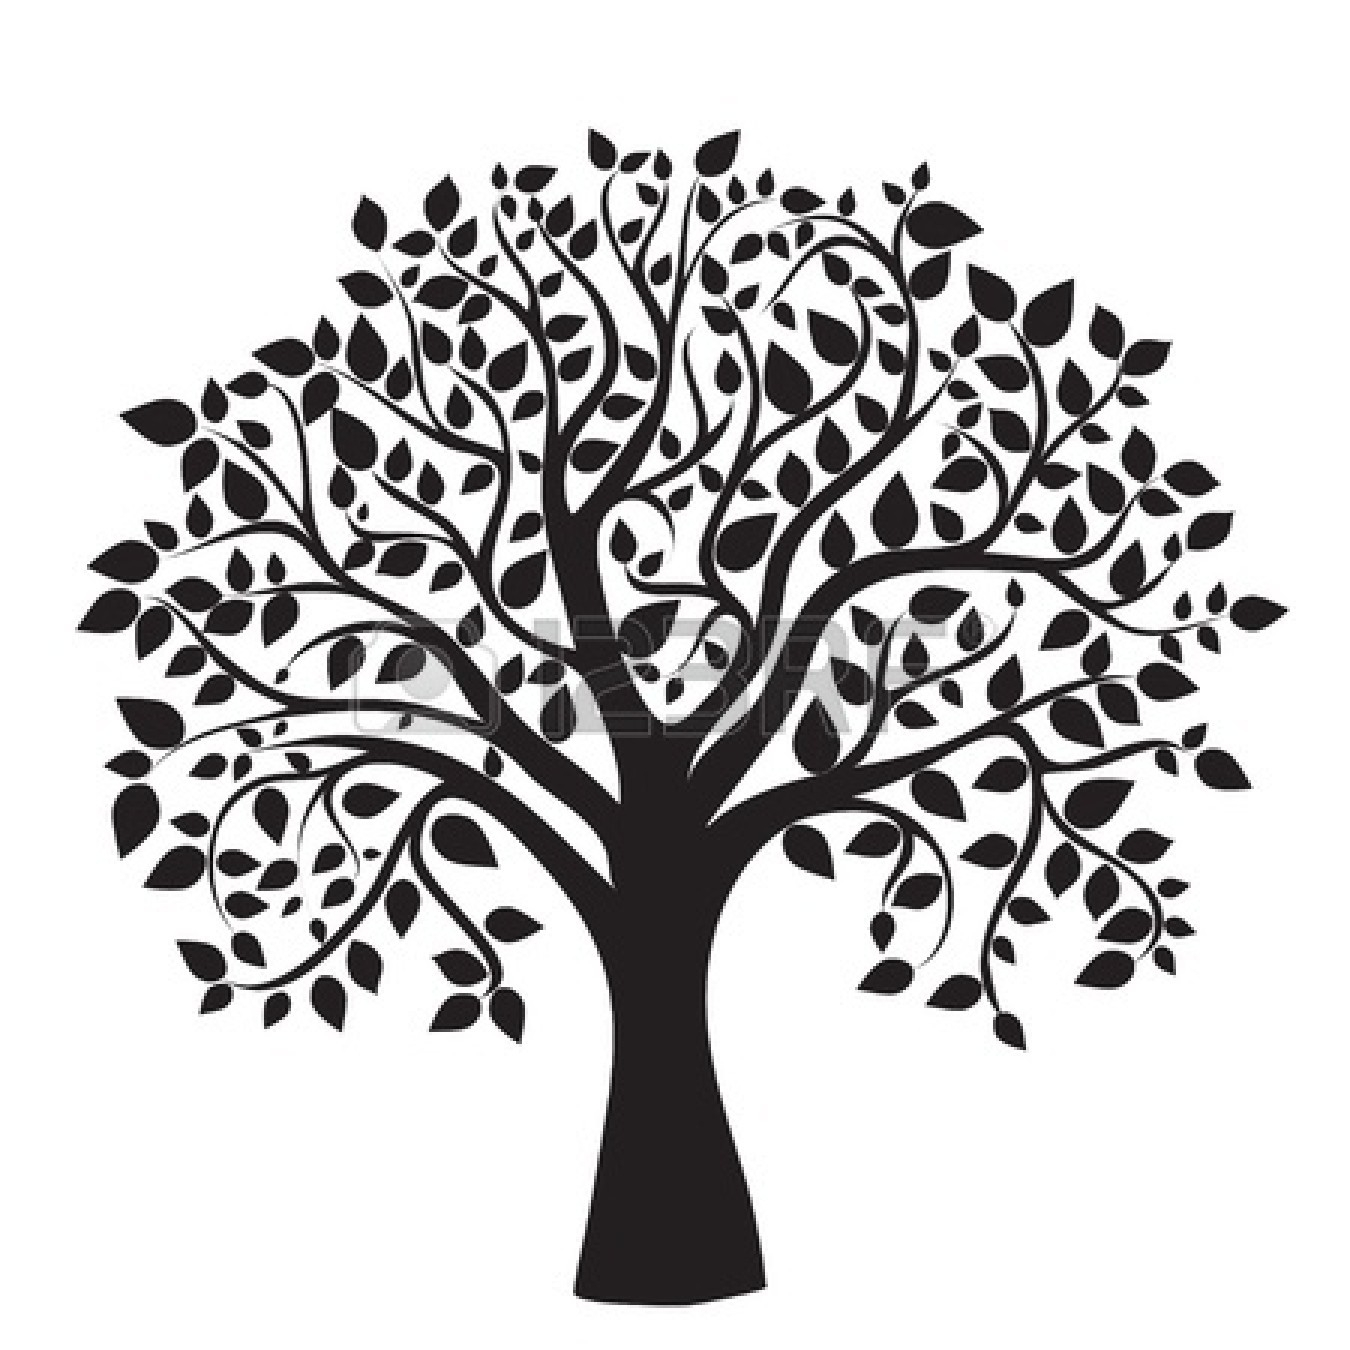 Apple Tree Black And White. Free Tree Clip Art ..